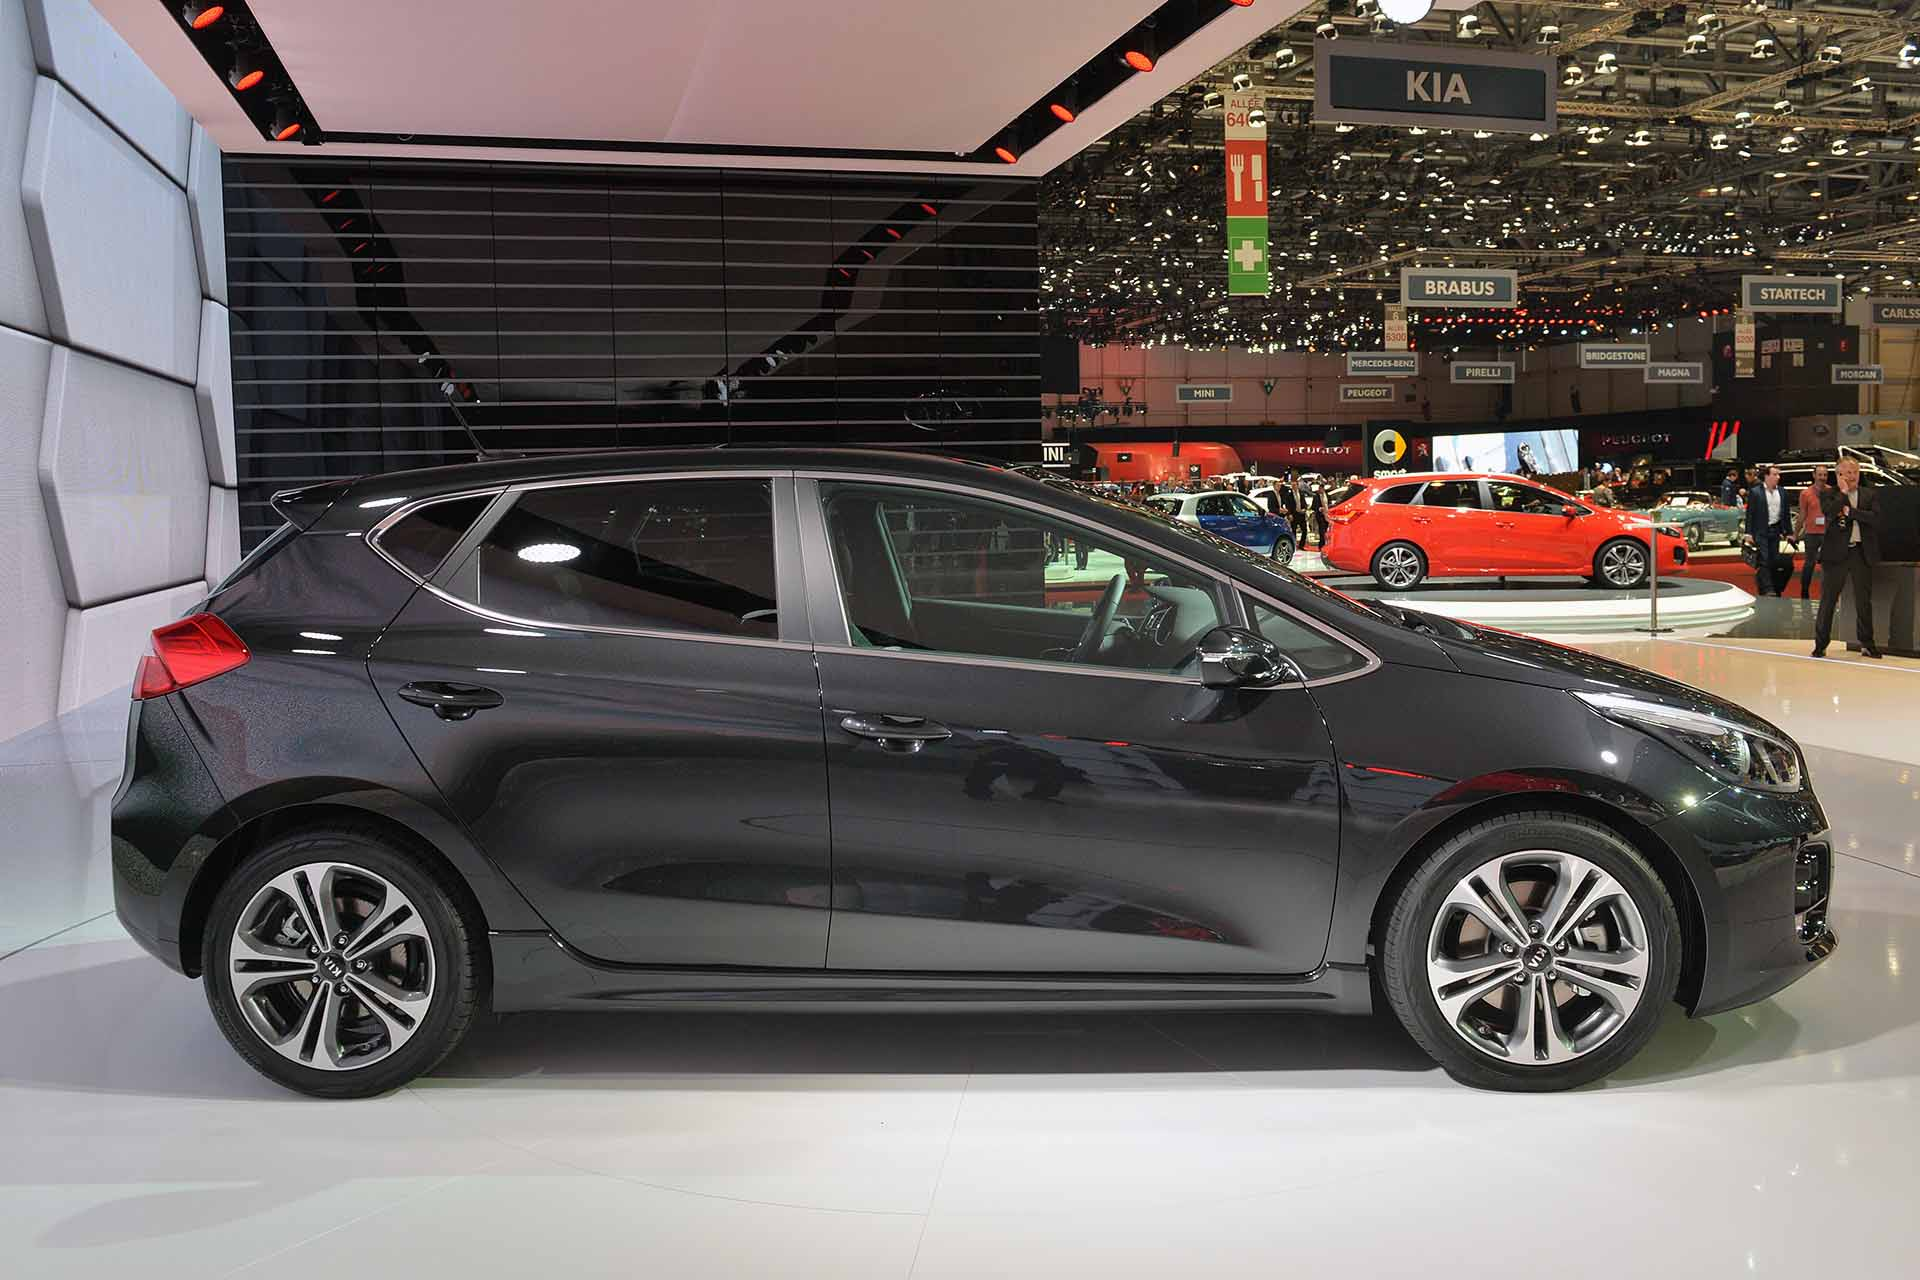 2016 kia ceed ii pictures information and specs auto. Black Bedroom Furniture Sets. Home Design Ideas